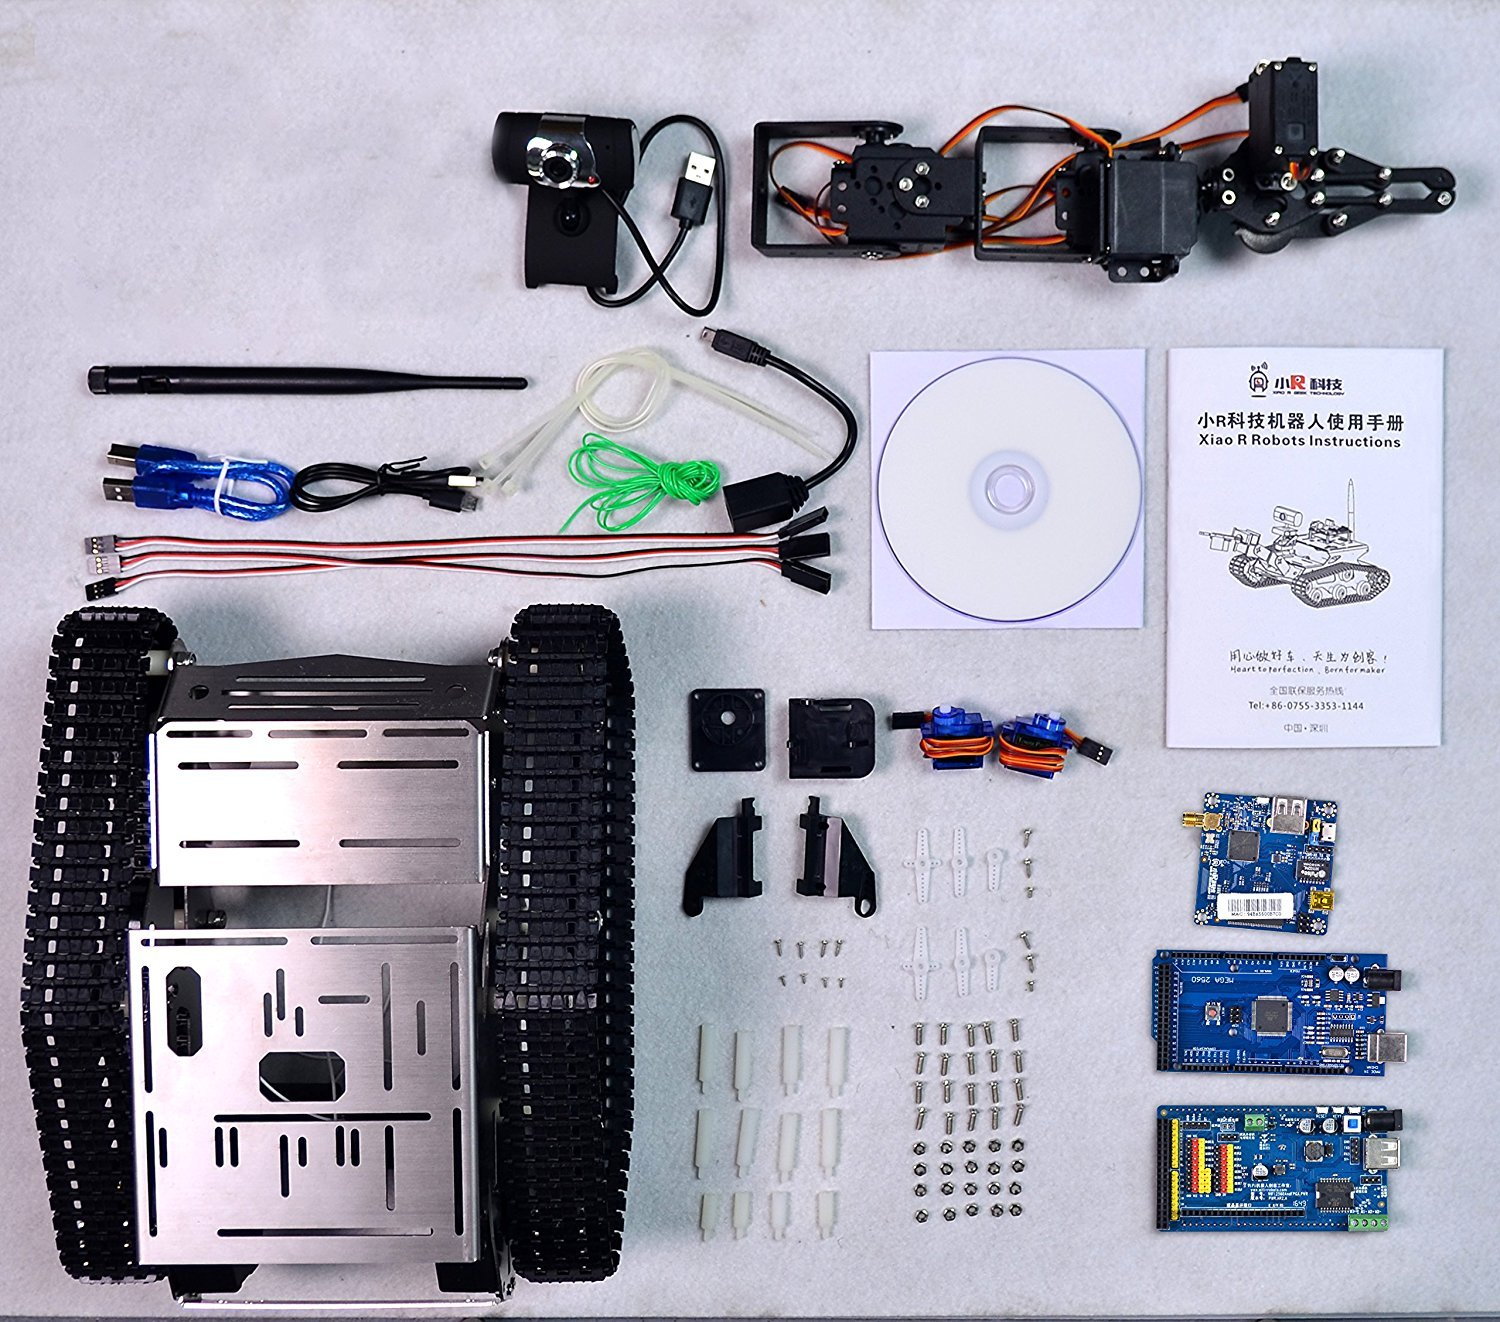 XiaoR Geek FPV Robot Car Kit with Robotic arm Hd Camera for Arduino,Utility Intelligent Tank chassis Robotics Vehicle,Smart Learning & Educational TH Robot Toys by iOS Android PC Controlled by XiaoR Geek (Image #6)